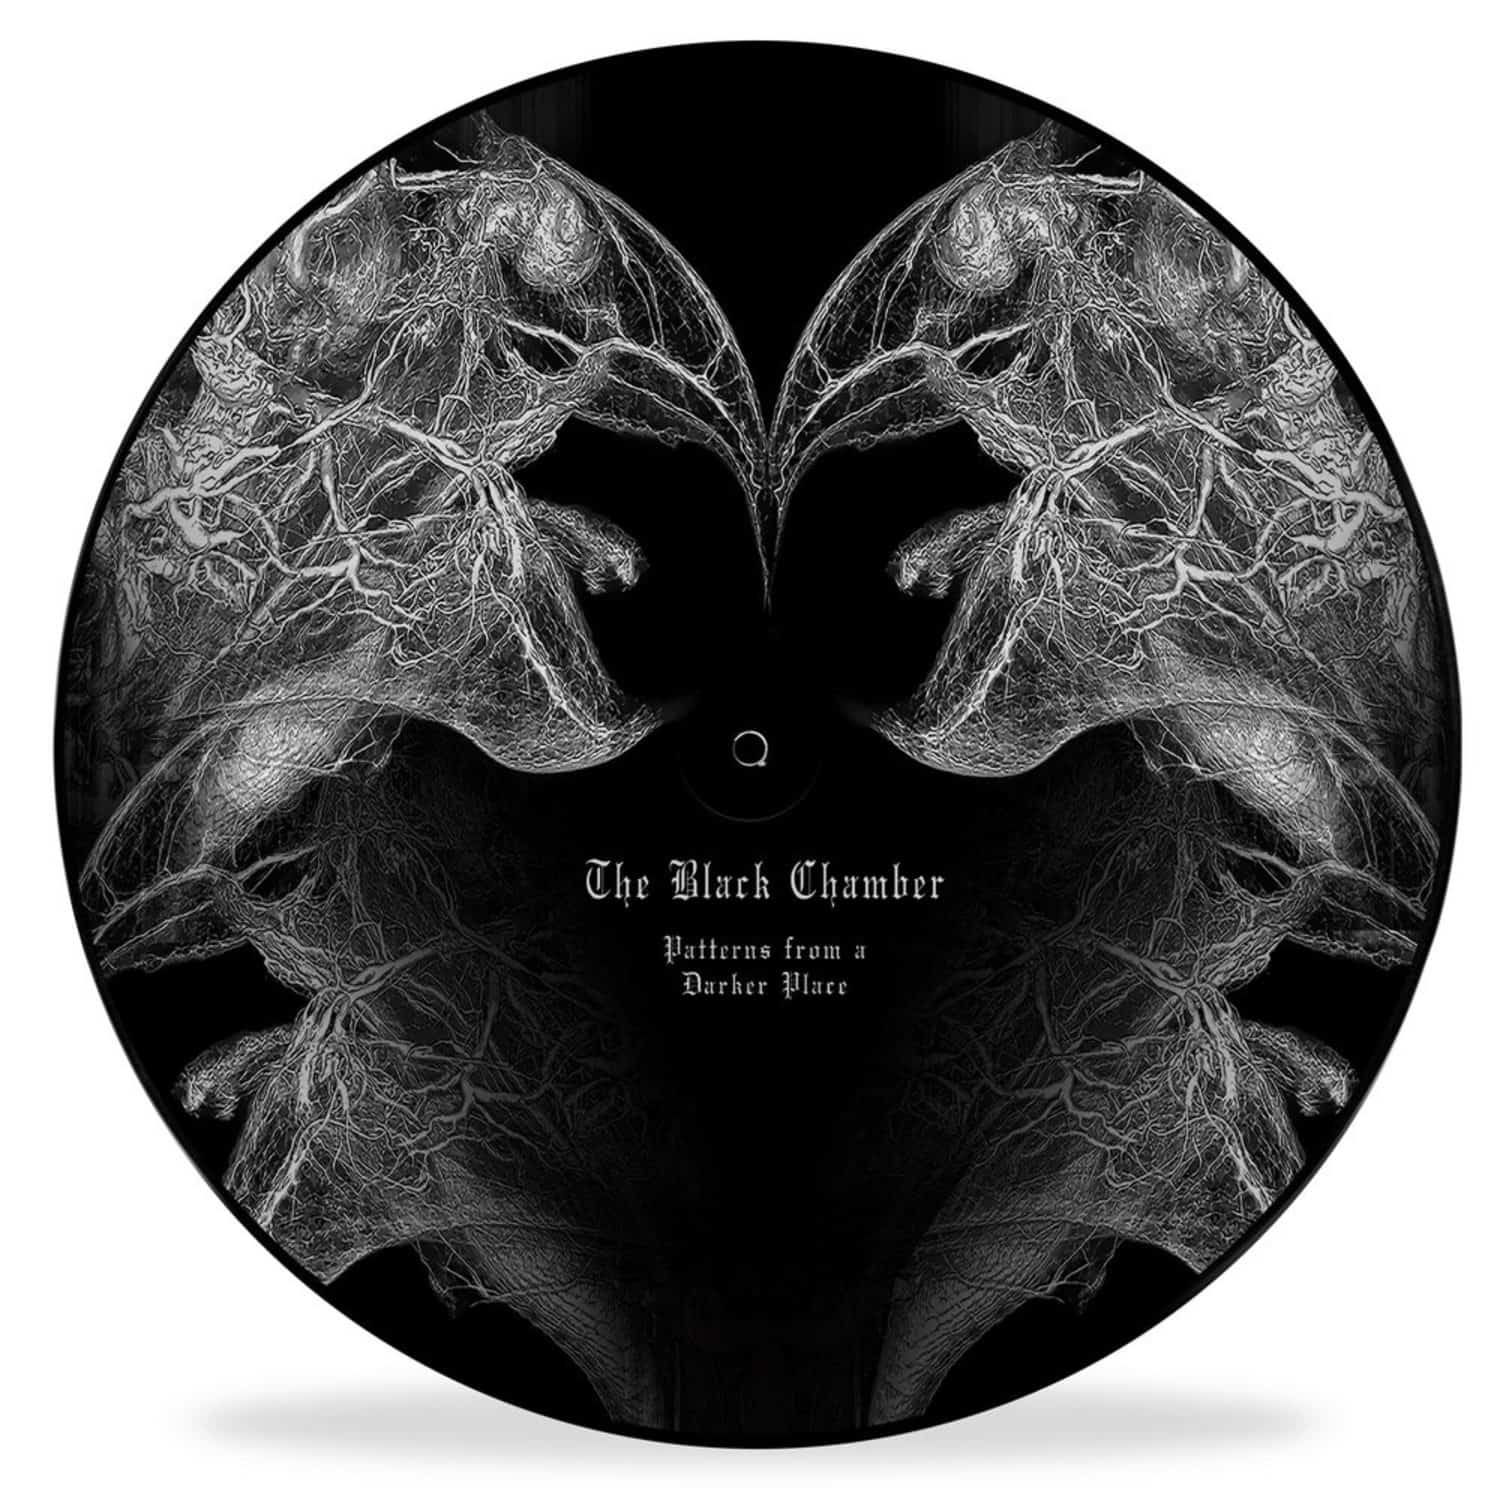 The Black Chamber - PATTERNS FROM A DARKER PLACE